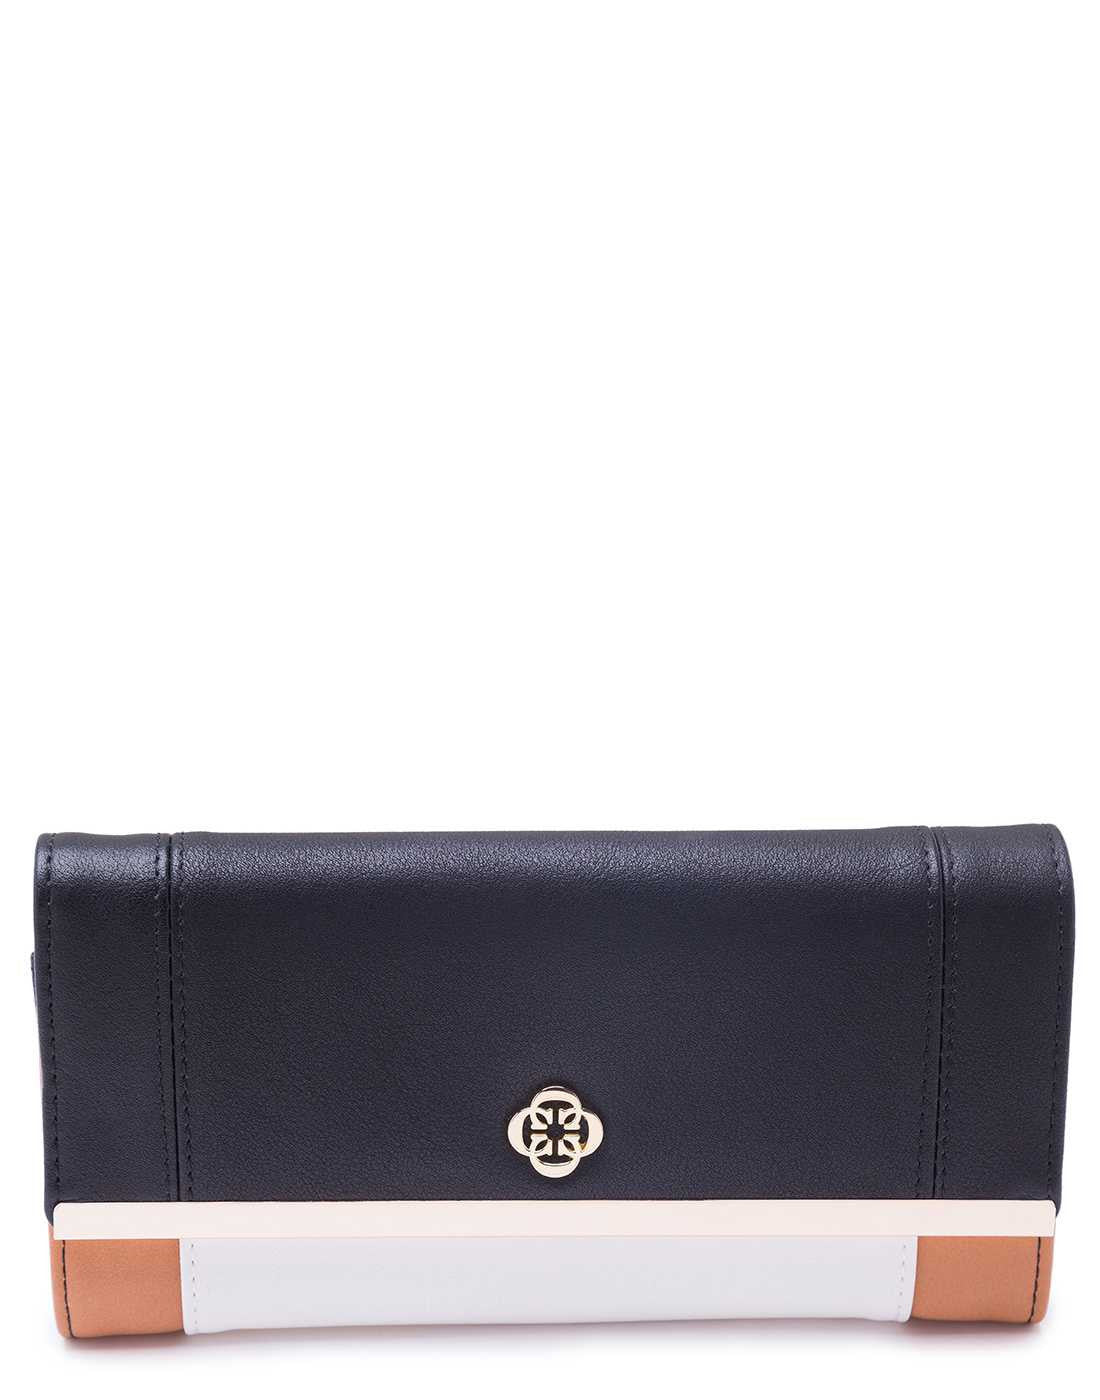 Panelled Wallet with Black Flap